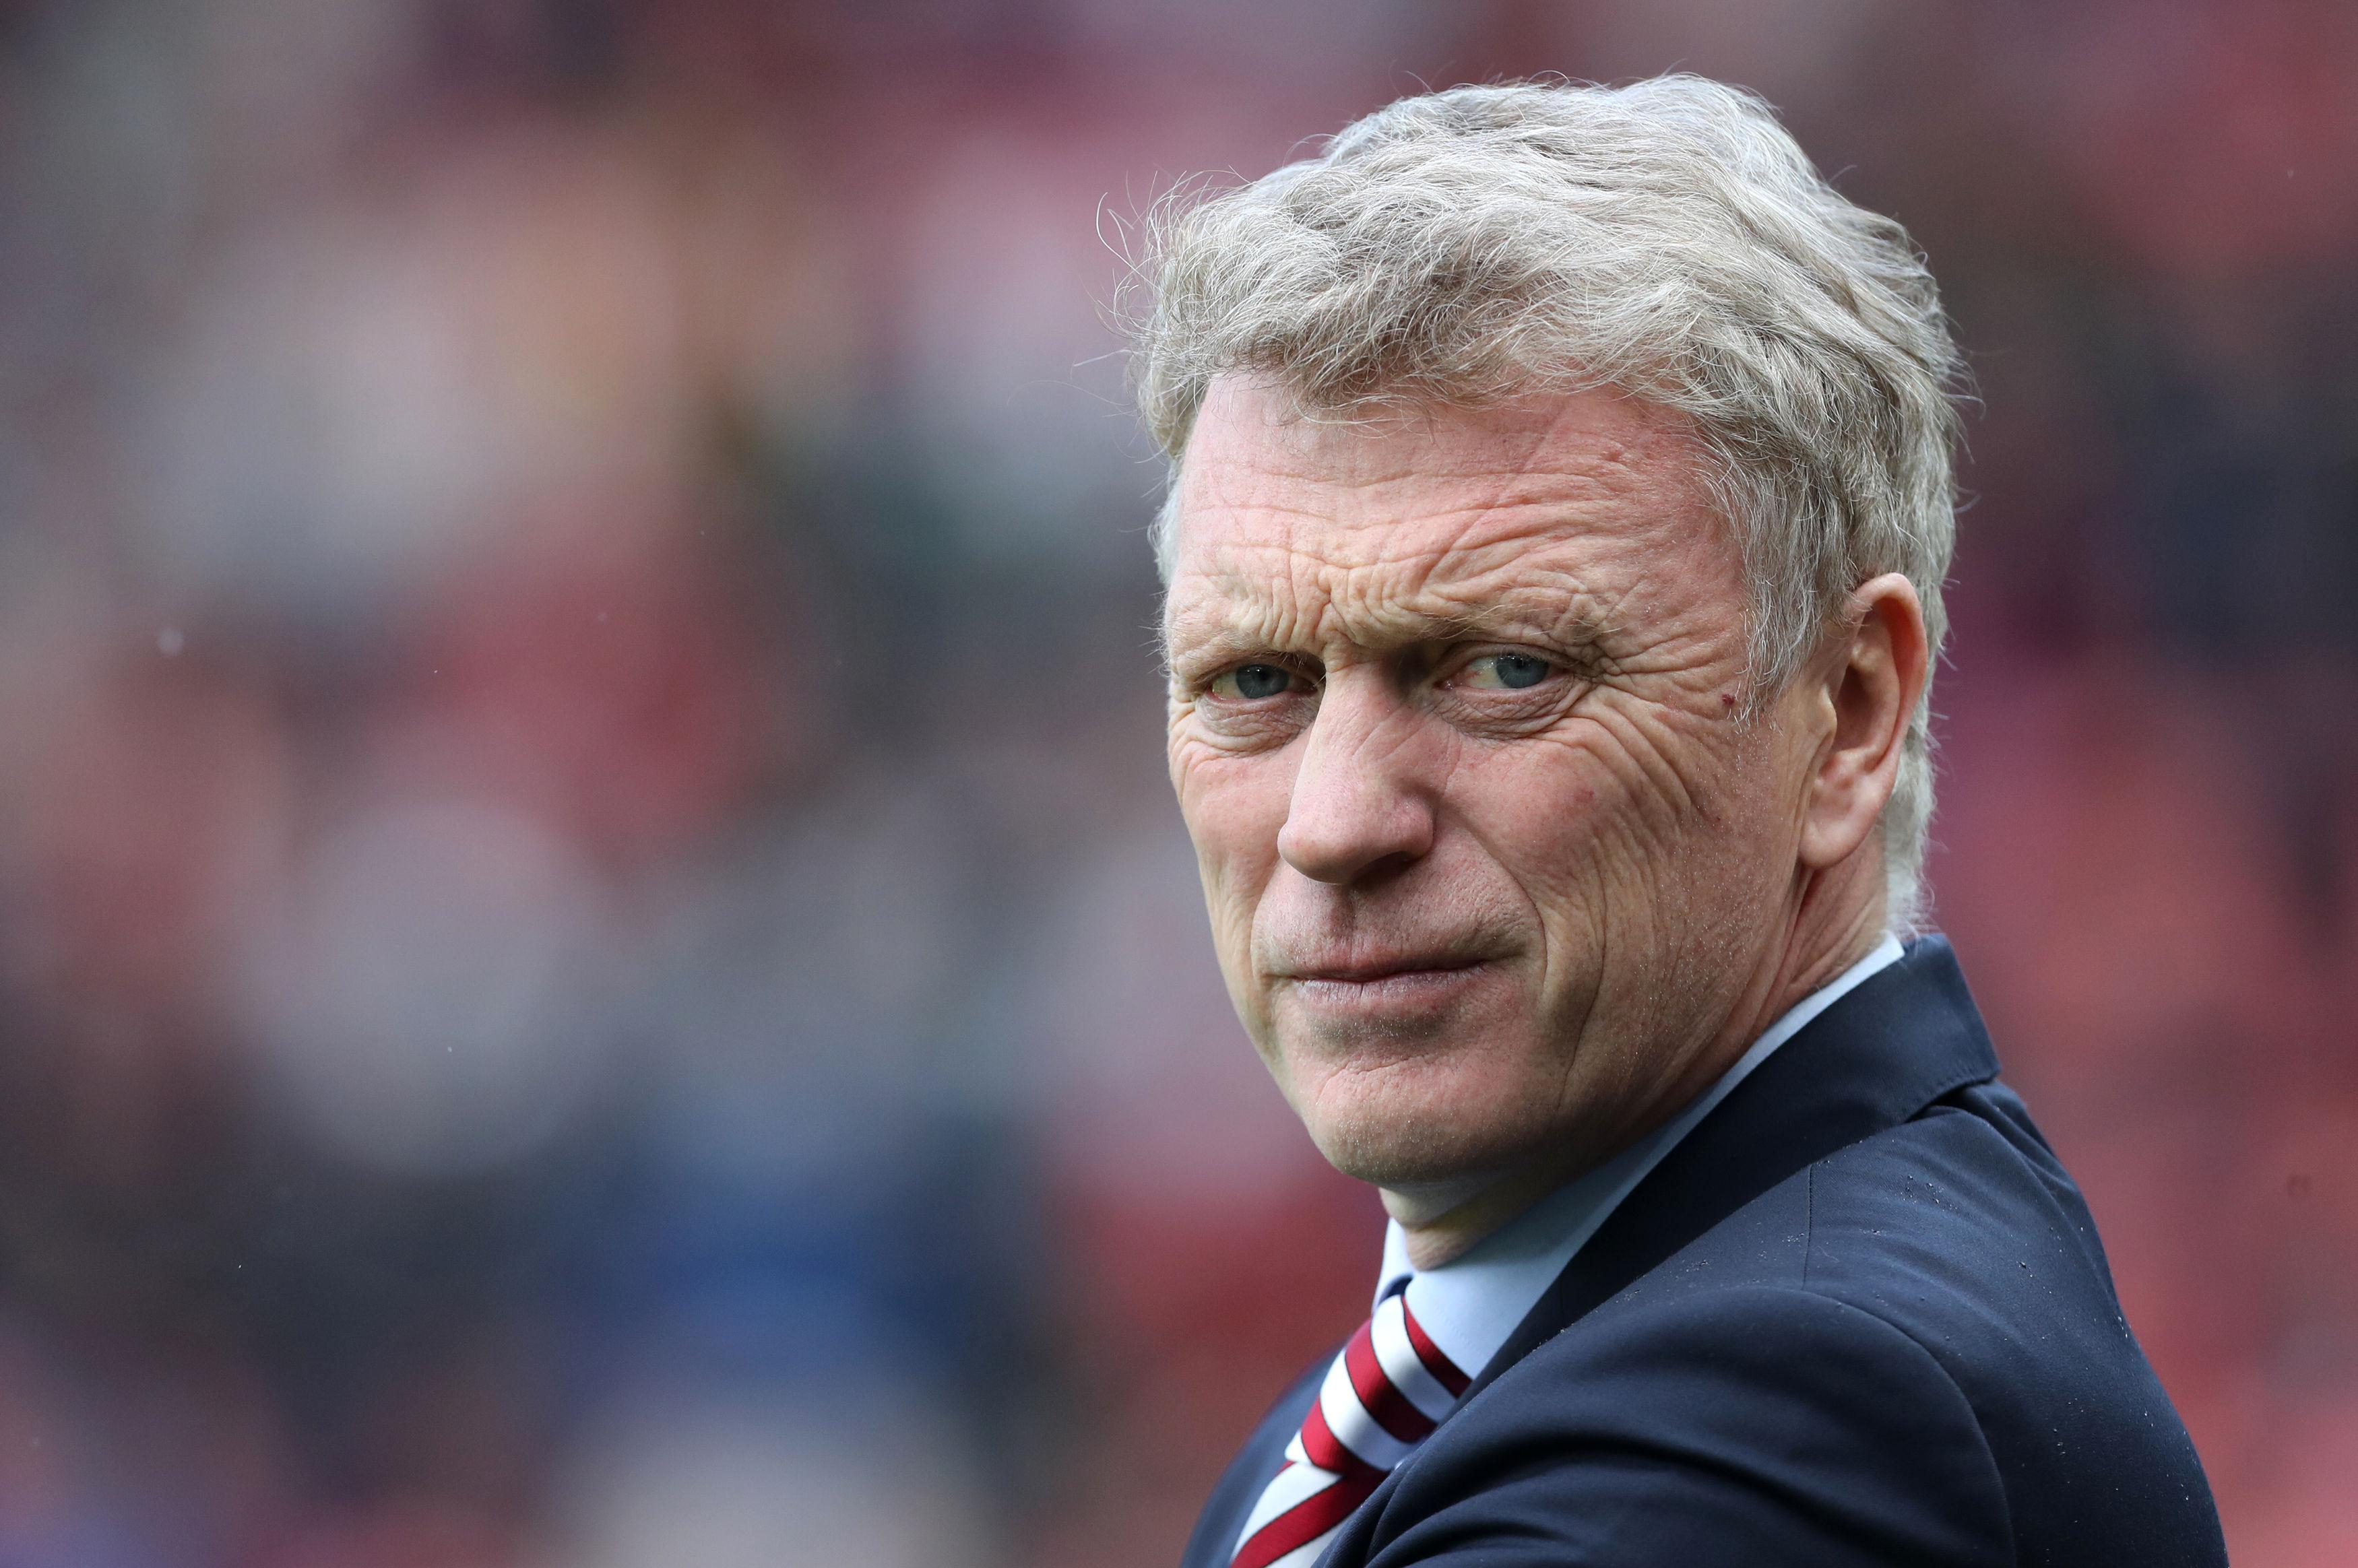 Moyes' career has suffered since he left Everton